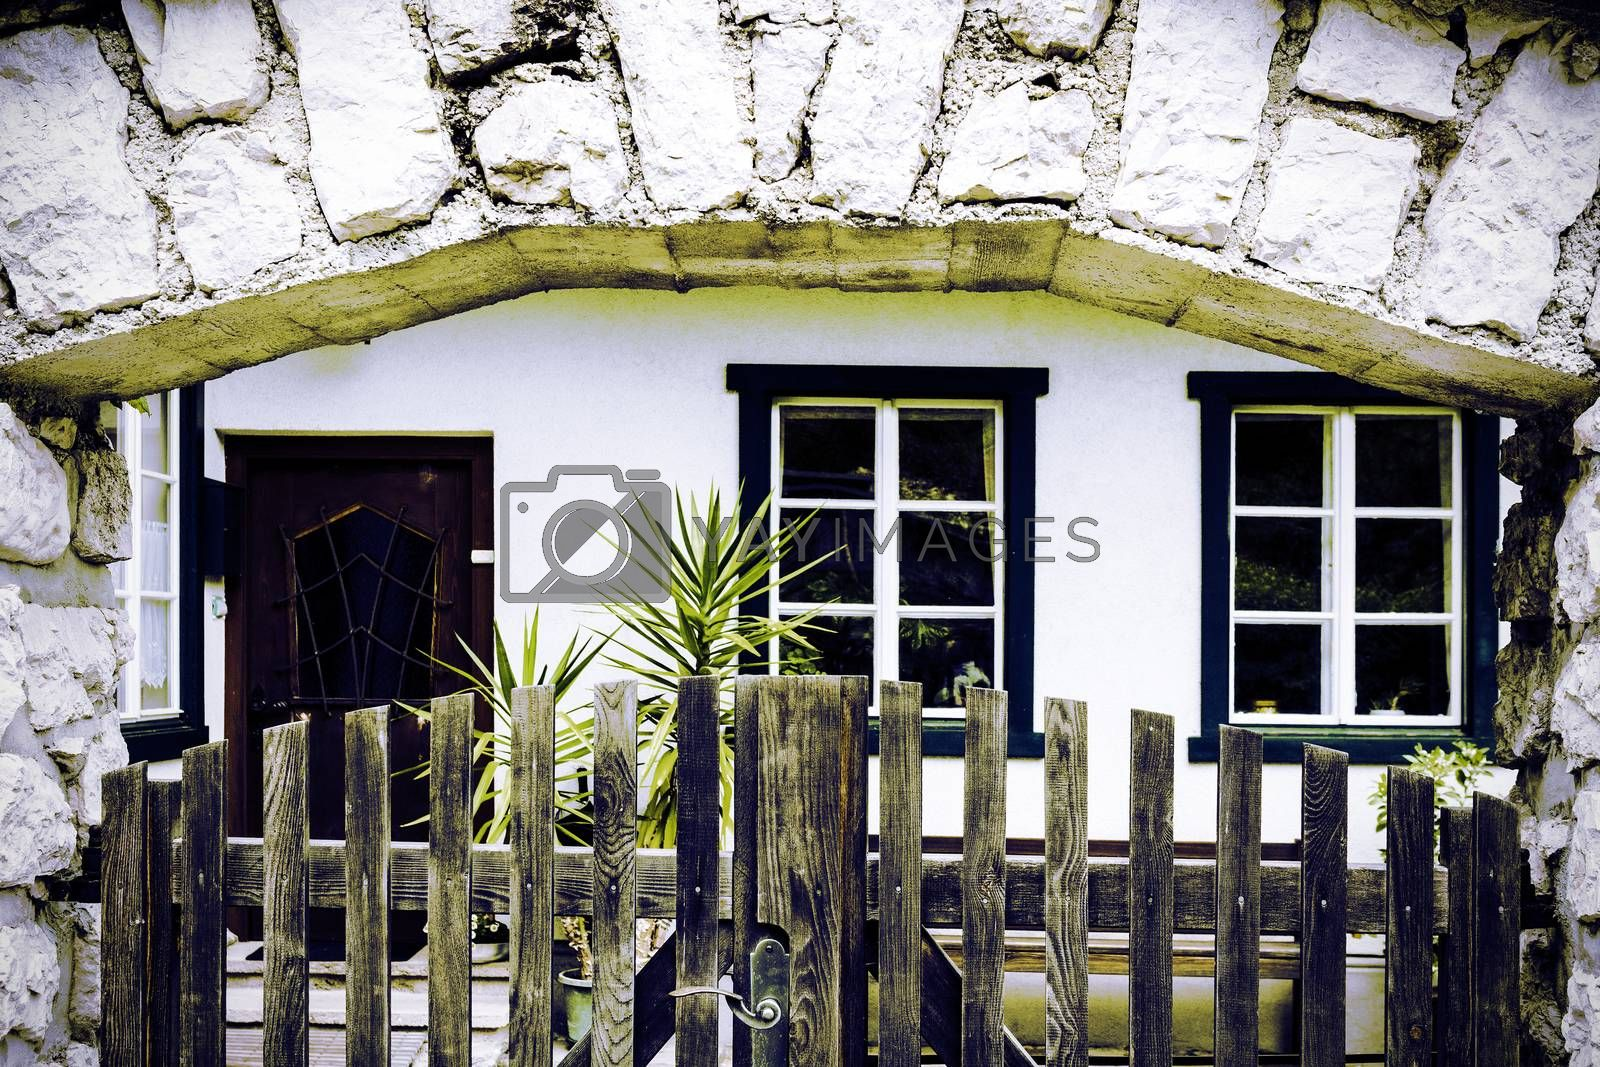 Entrance of the building in Austria, decorated with plants and wooden fence. Traditional Austrian House in Hallstatt in a rainy day. Vintage style